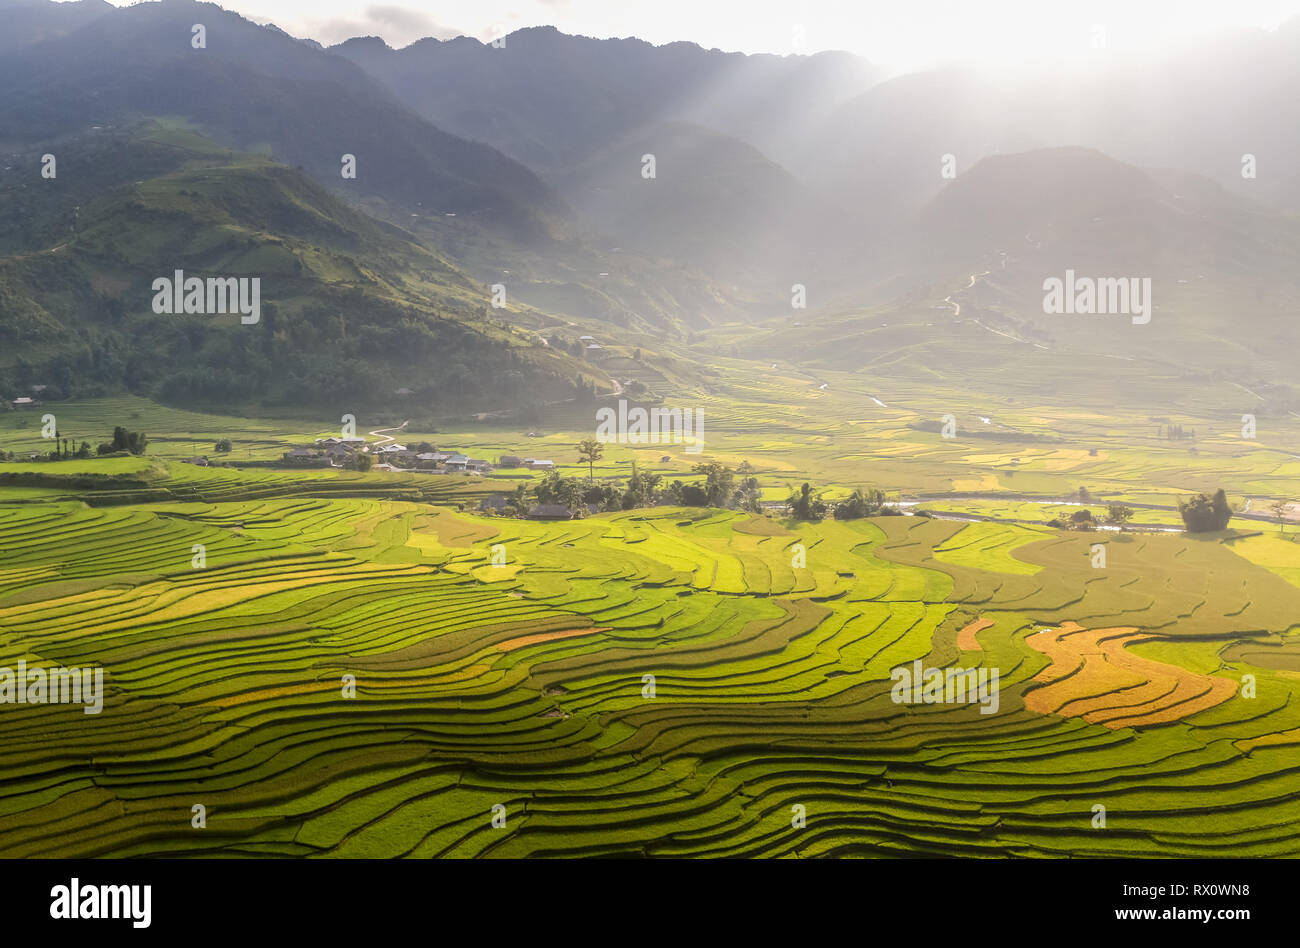 Valley of Rice - Stock Image